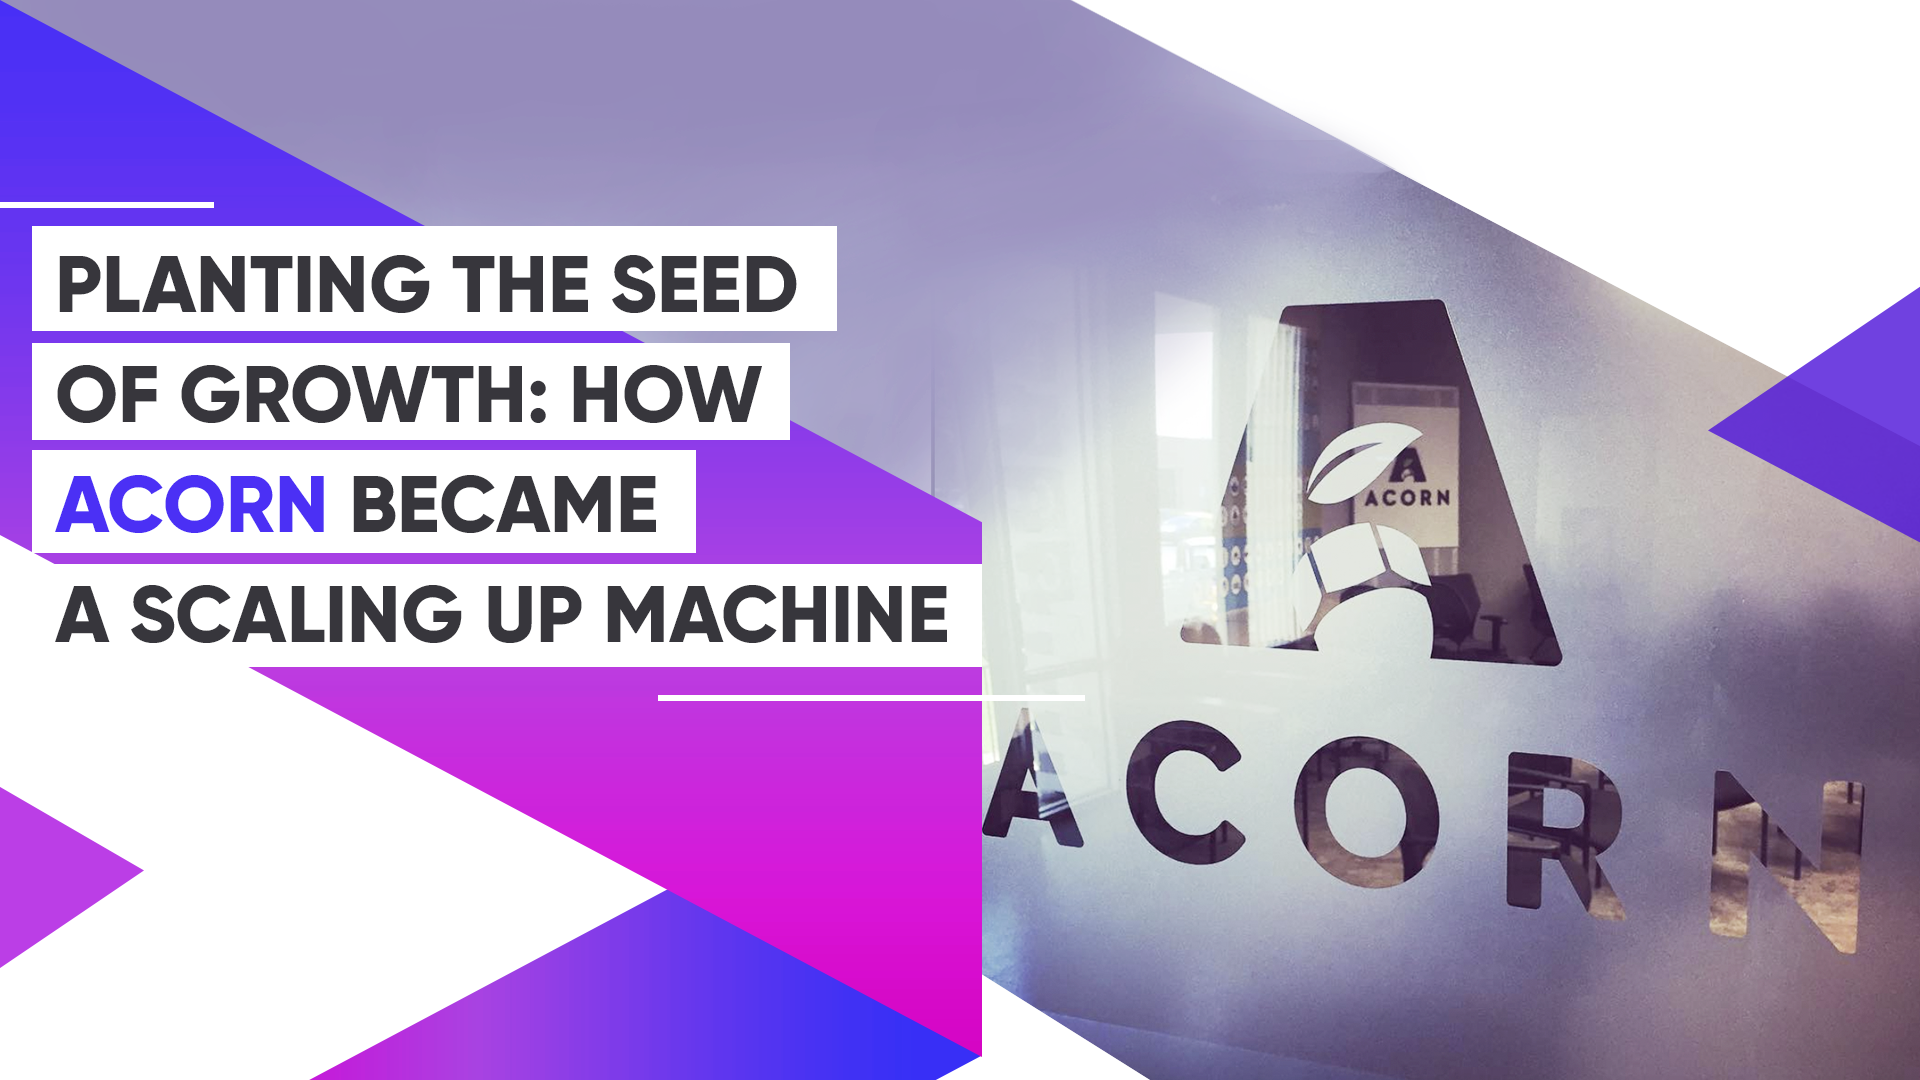 Planting The Seed Of Growth: How Acorn Became A Scaling Up Machine